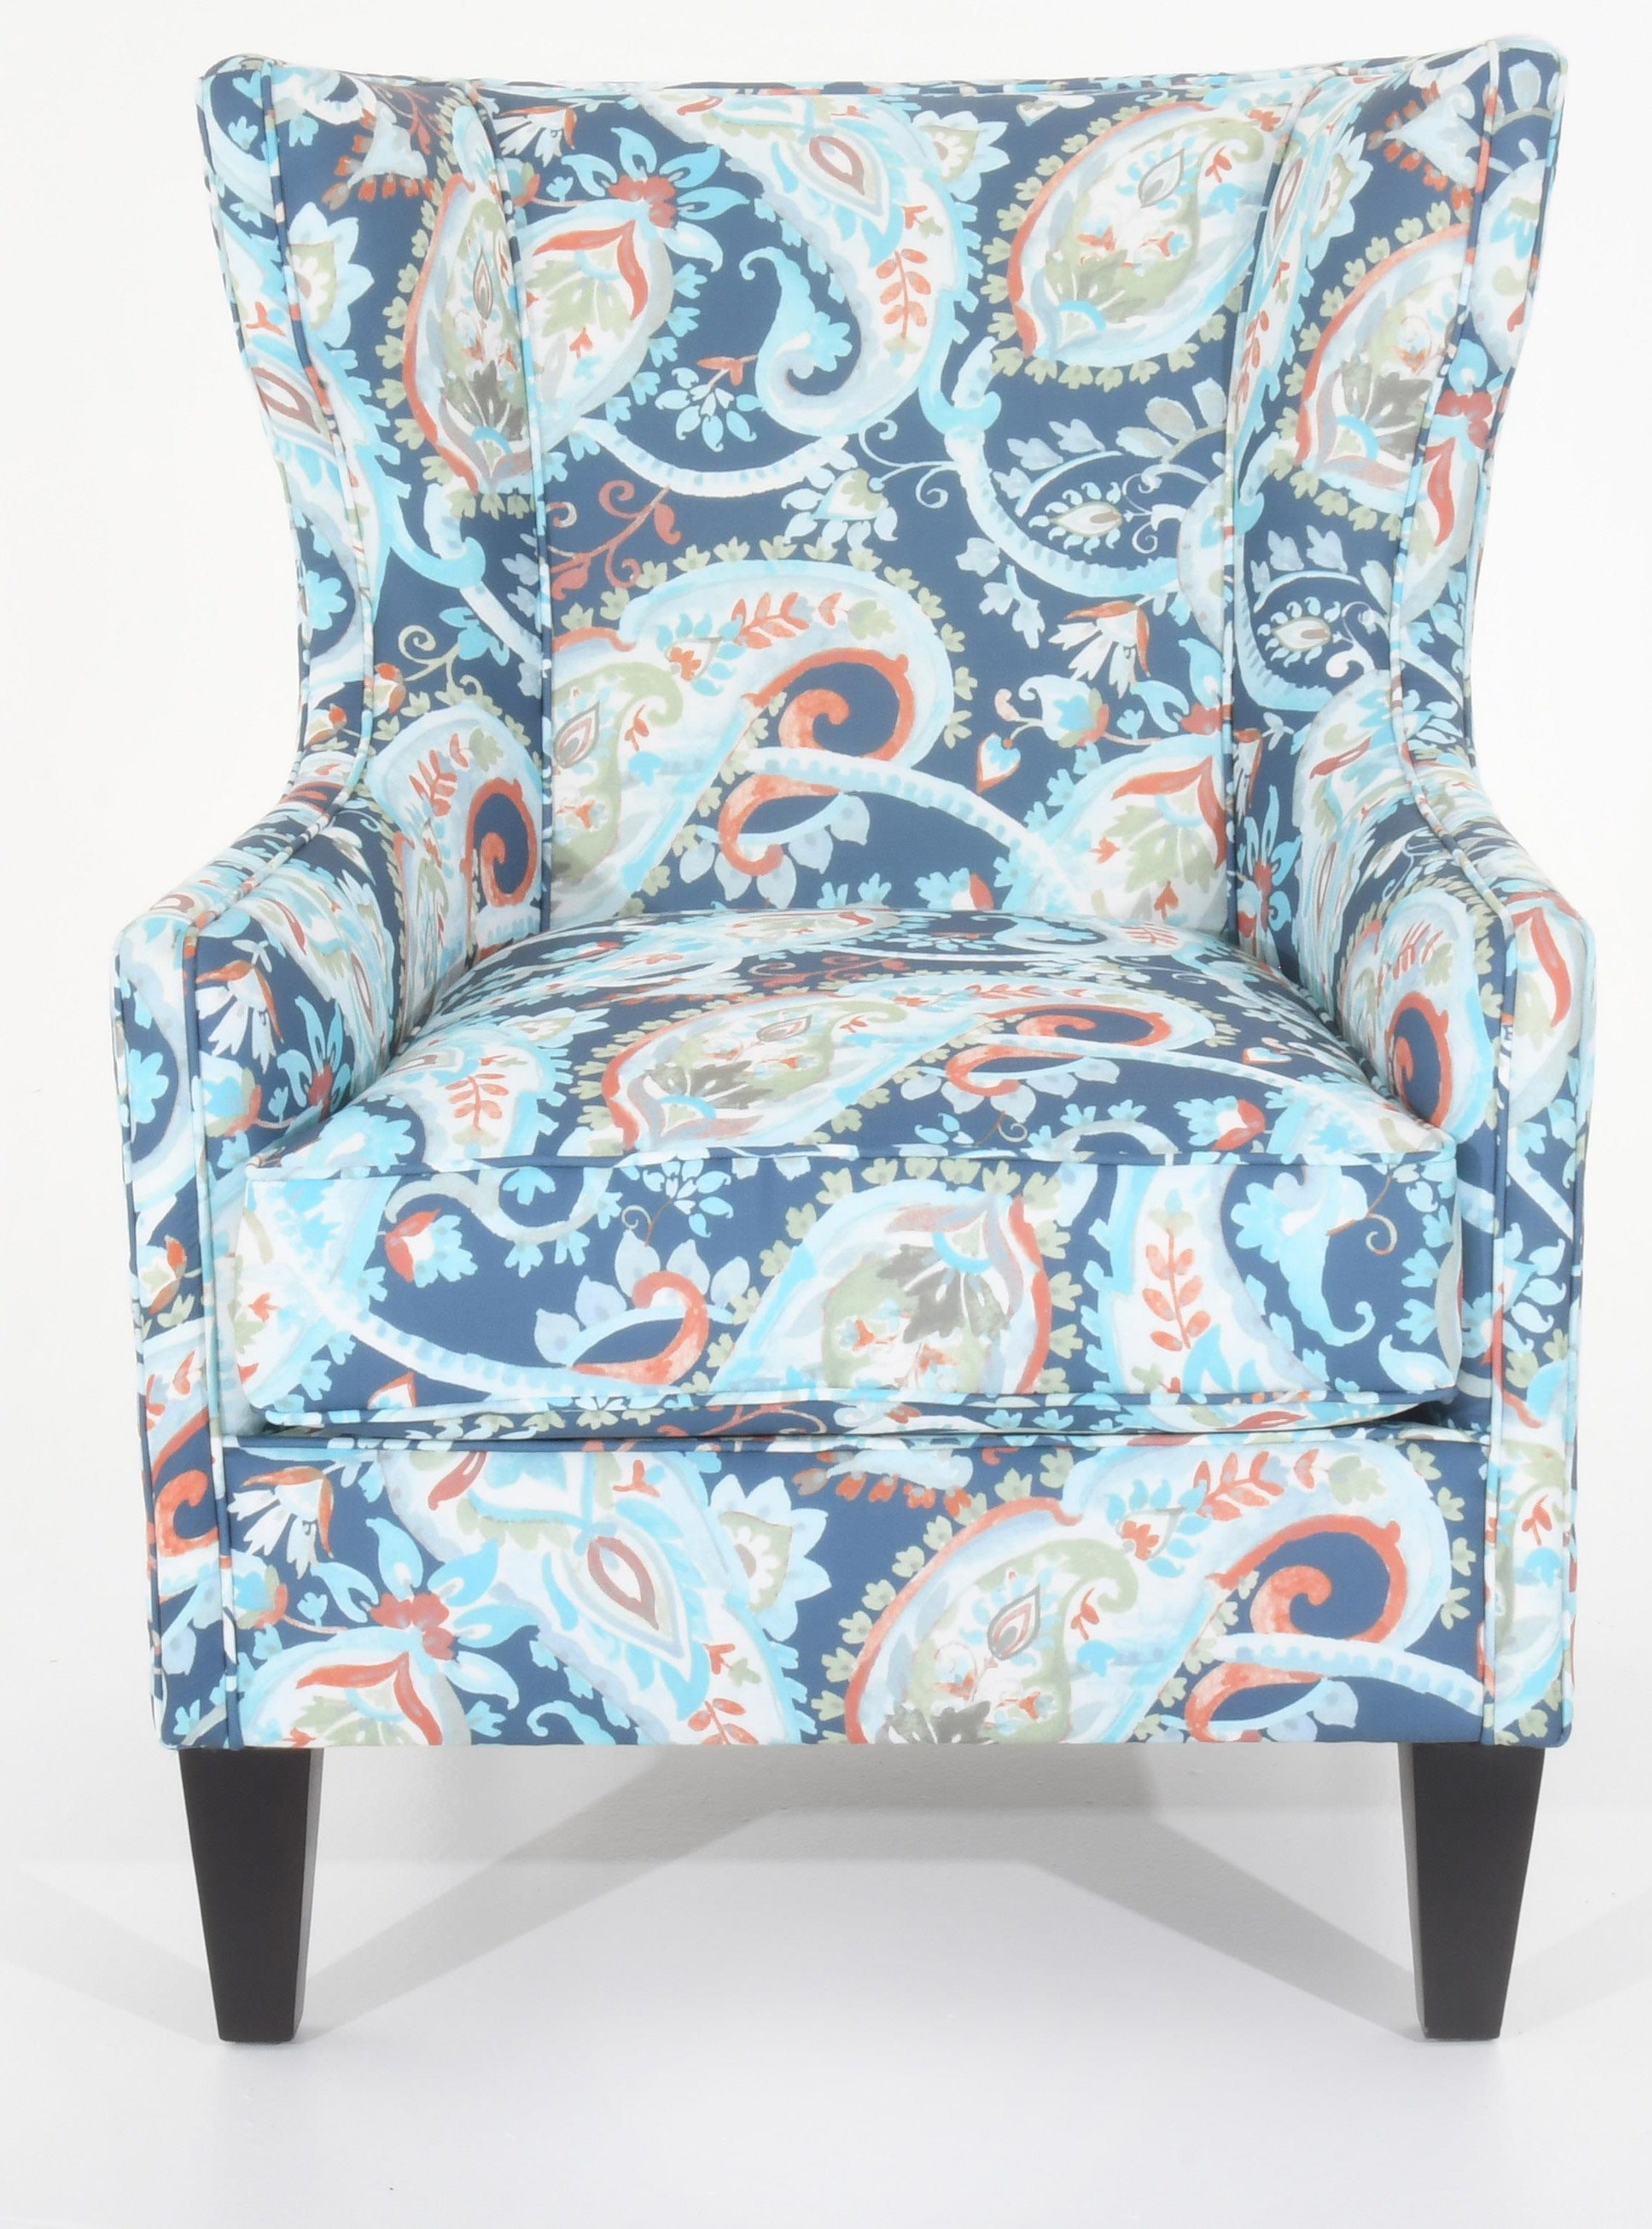 Stone Leigh Furniture Indira 144544687 Accent Chair Baer S Furniture Upholstered Chairs